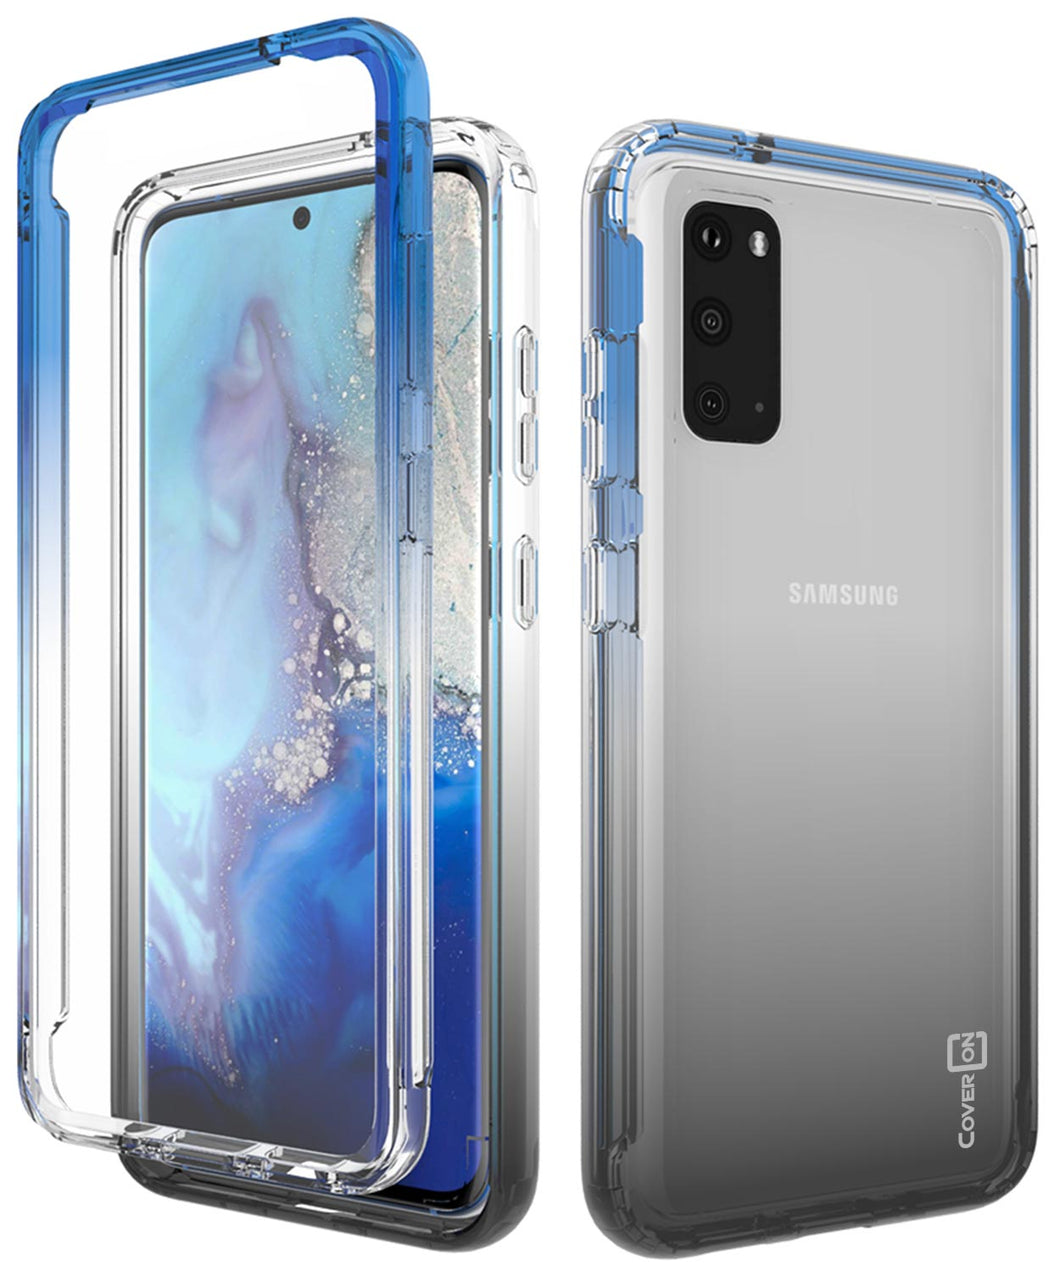 Samsung Galaxy S20 Clear Case - Full Body Colorful Phone Cover - Gradient Series